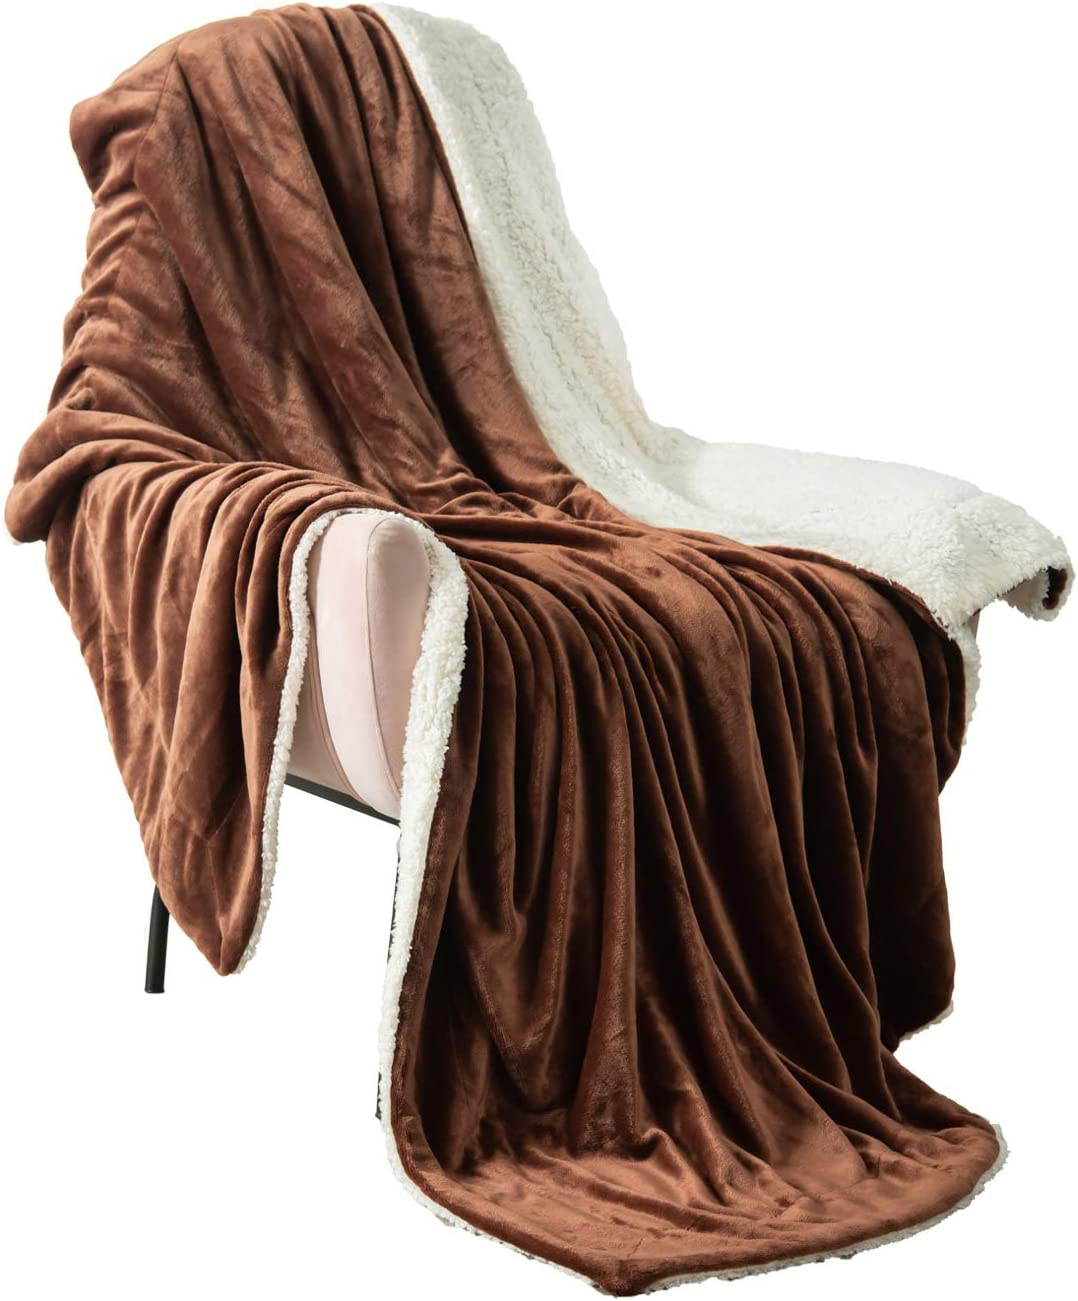 VOTOWN HOME Sherpa Blanket Throw Soft Plush Fuzzy Blanket Reversible Warm Winter Blanket for Couch Micro Fleece Fabric, Brown Throw Size 50